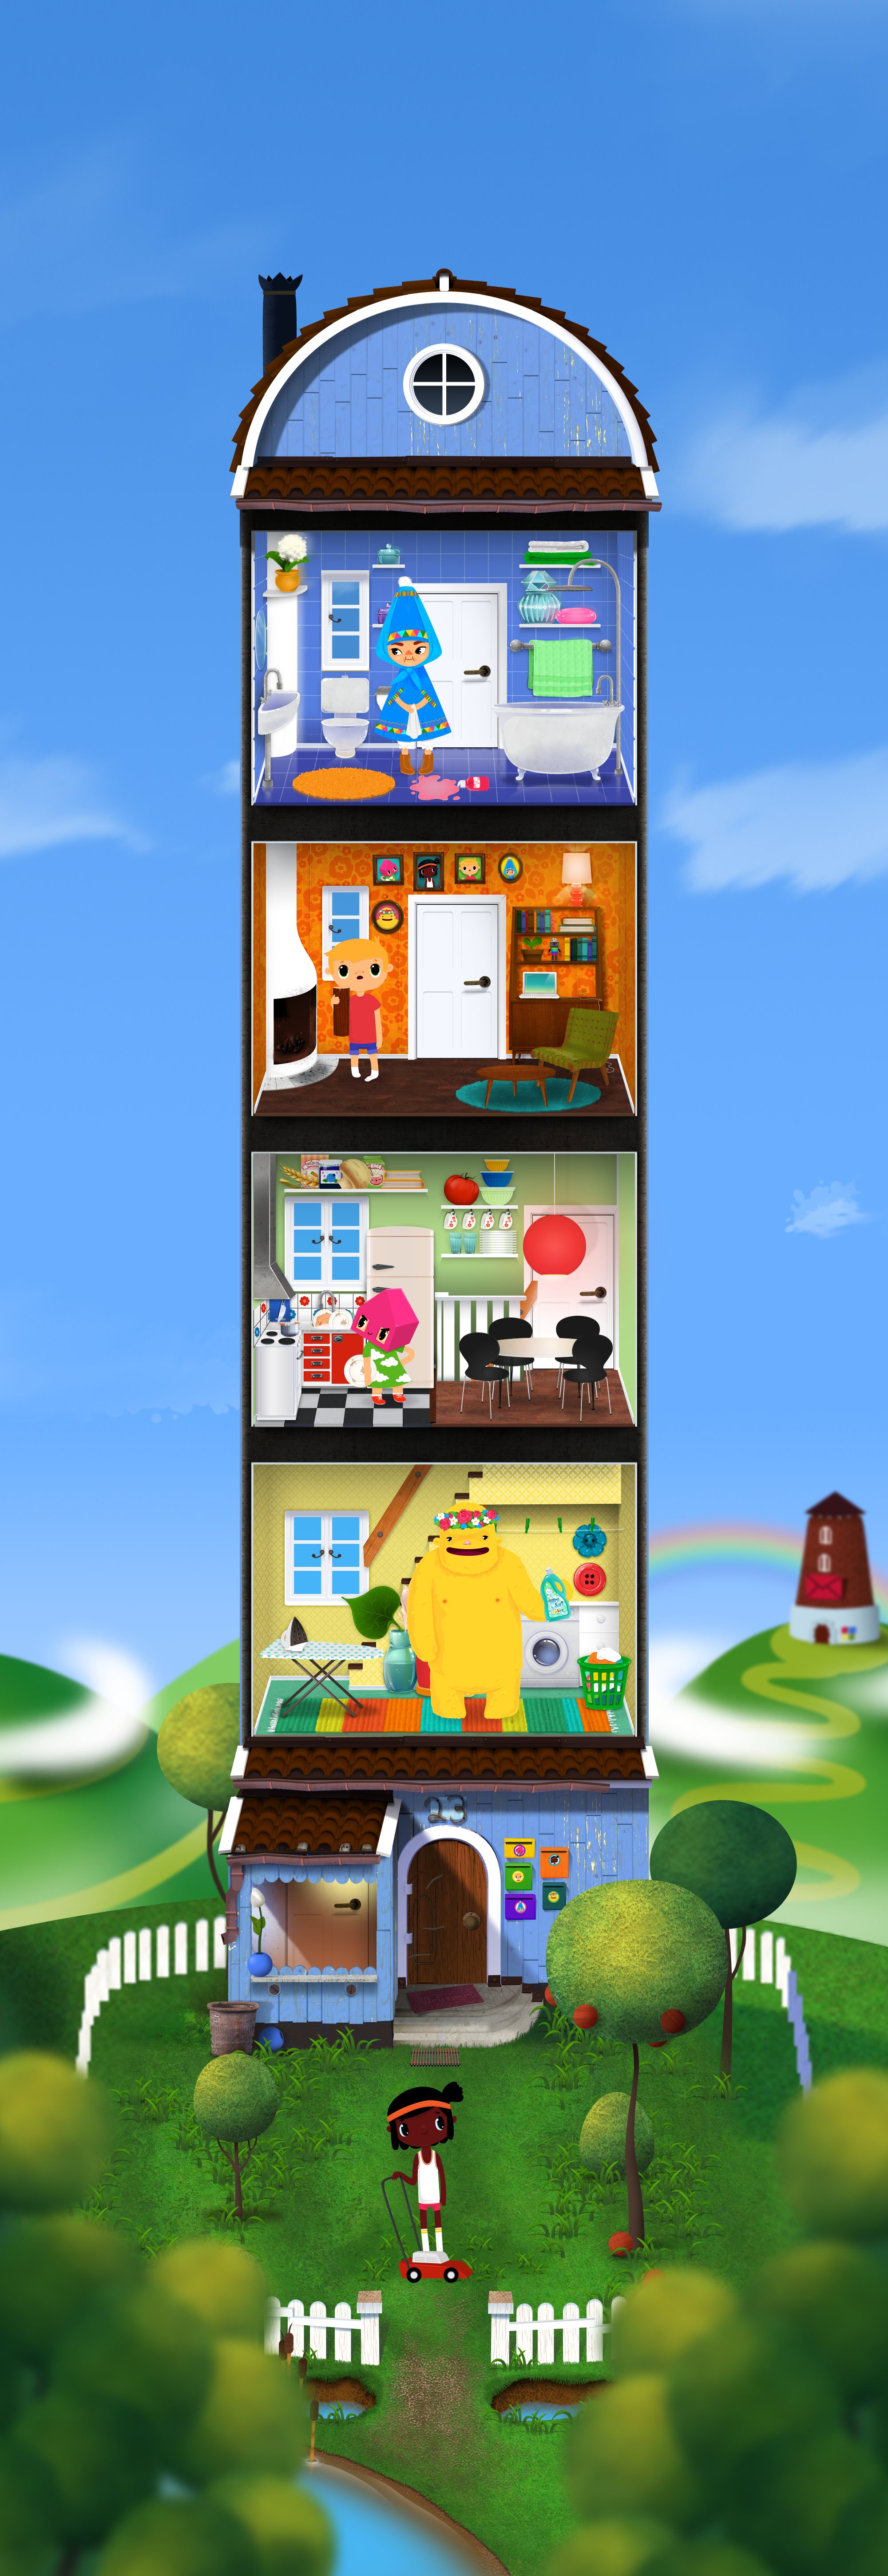 Toca house poster toca boca from the iphone ipad app for Home building apps for iphone